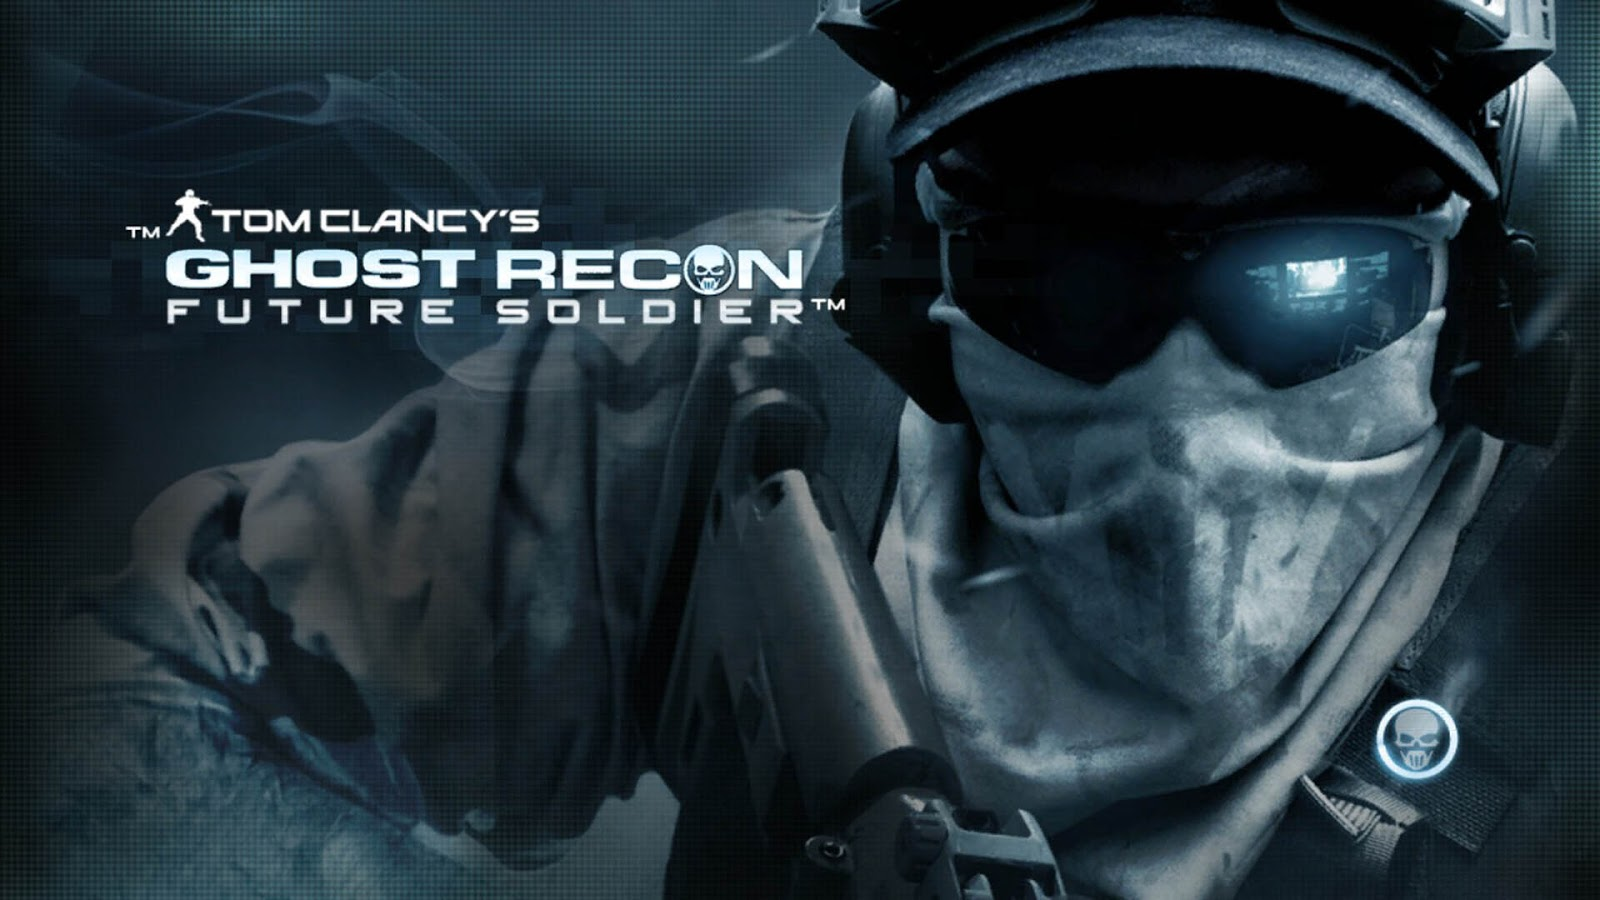 Ghost Recon Future Soldier HD & Widescreen Wallpaper 0.4014596951305